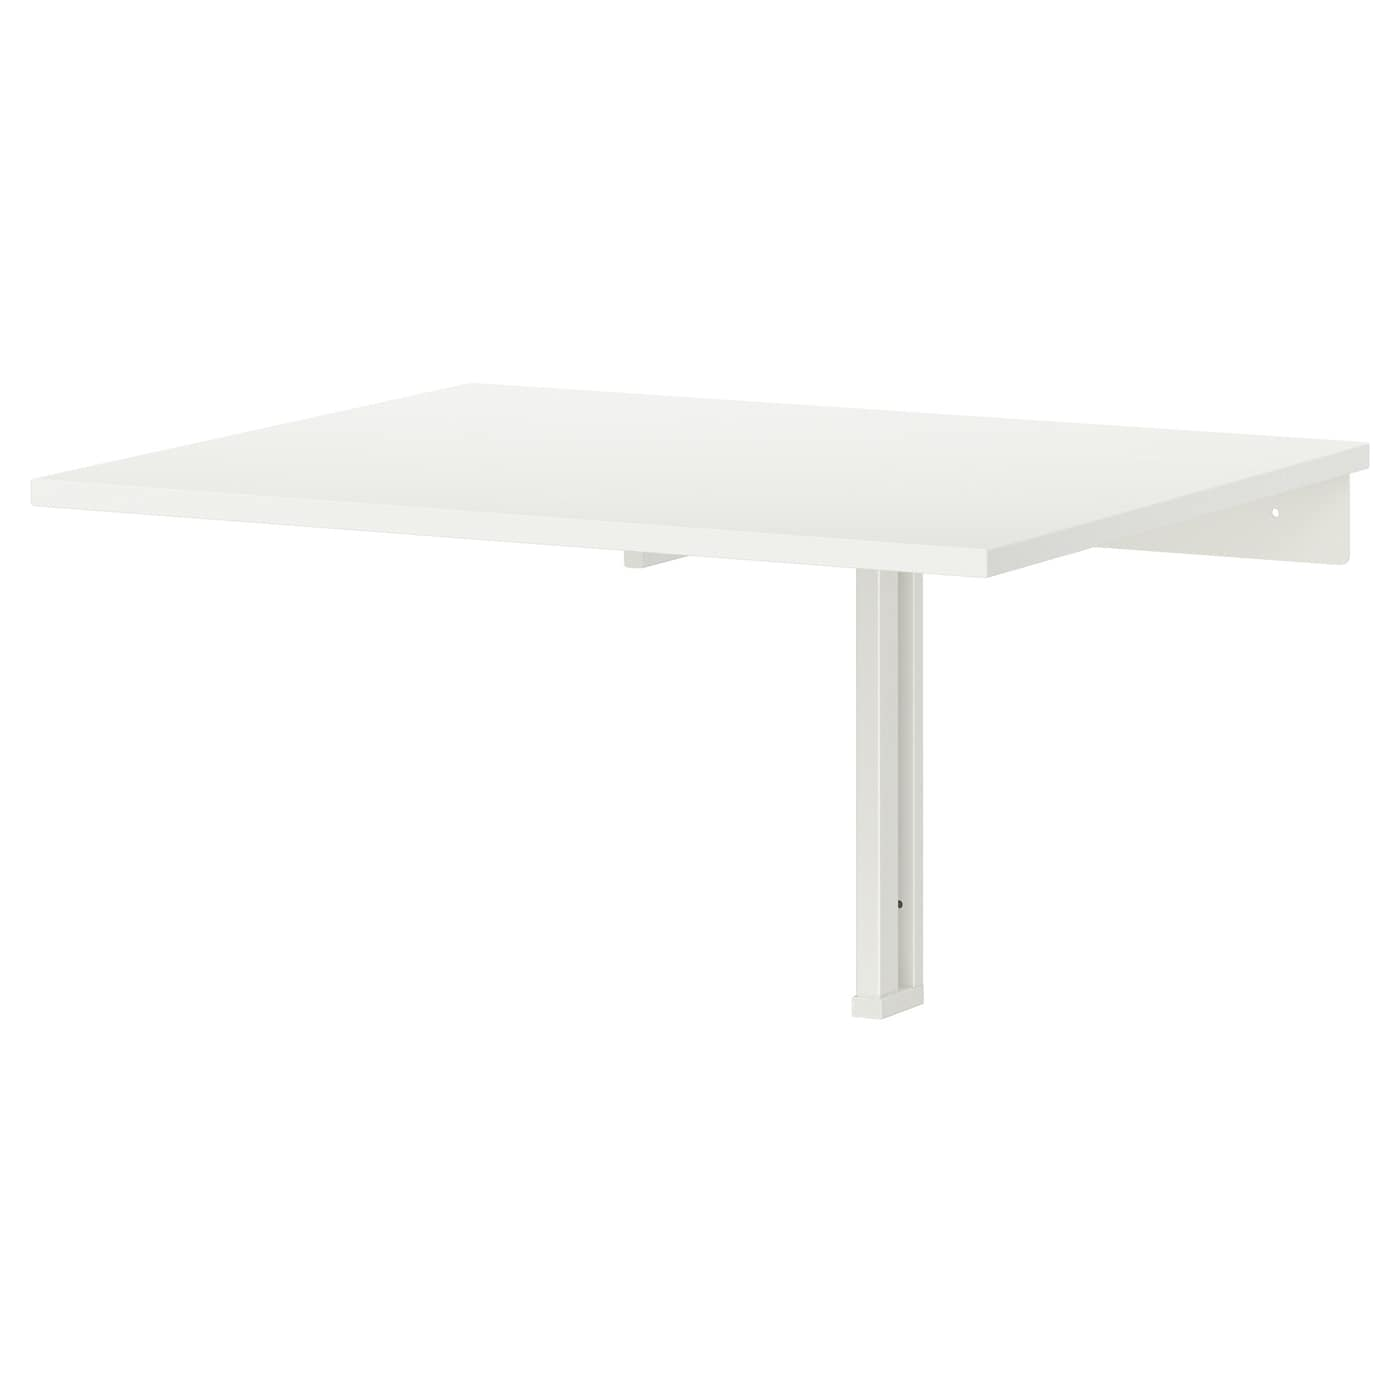 Norberg wall mounted drop leaf table white 74 x 60 cm ikea for Ikea klapptisch